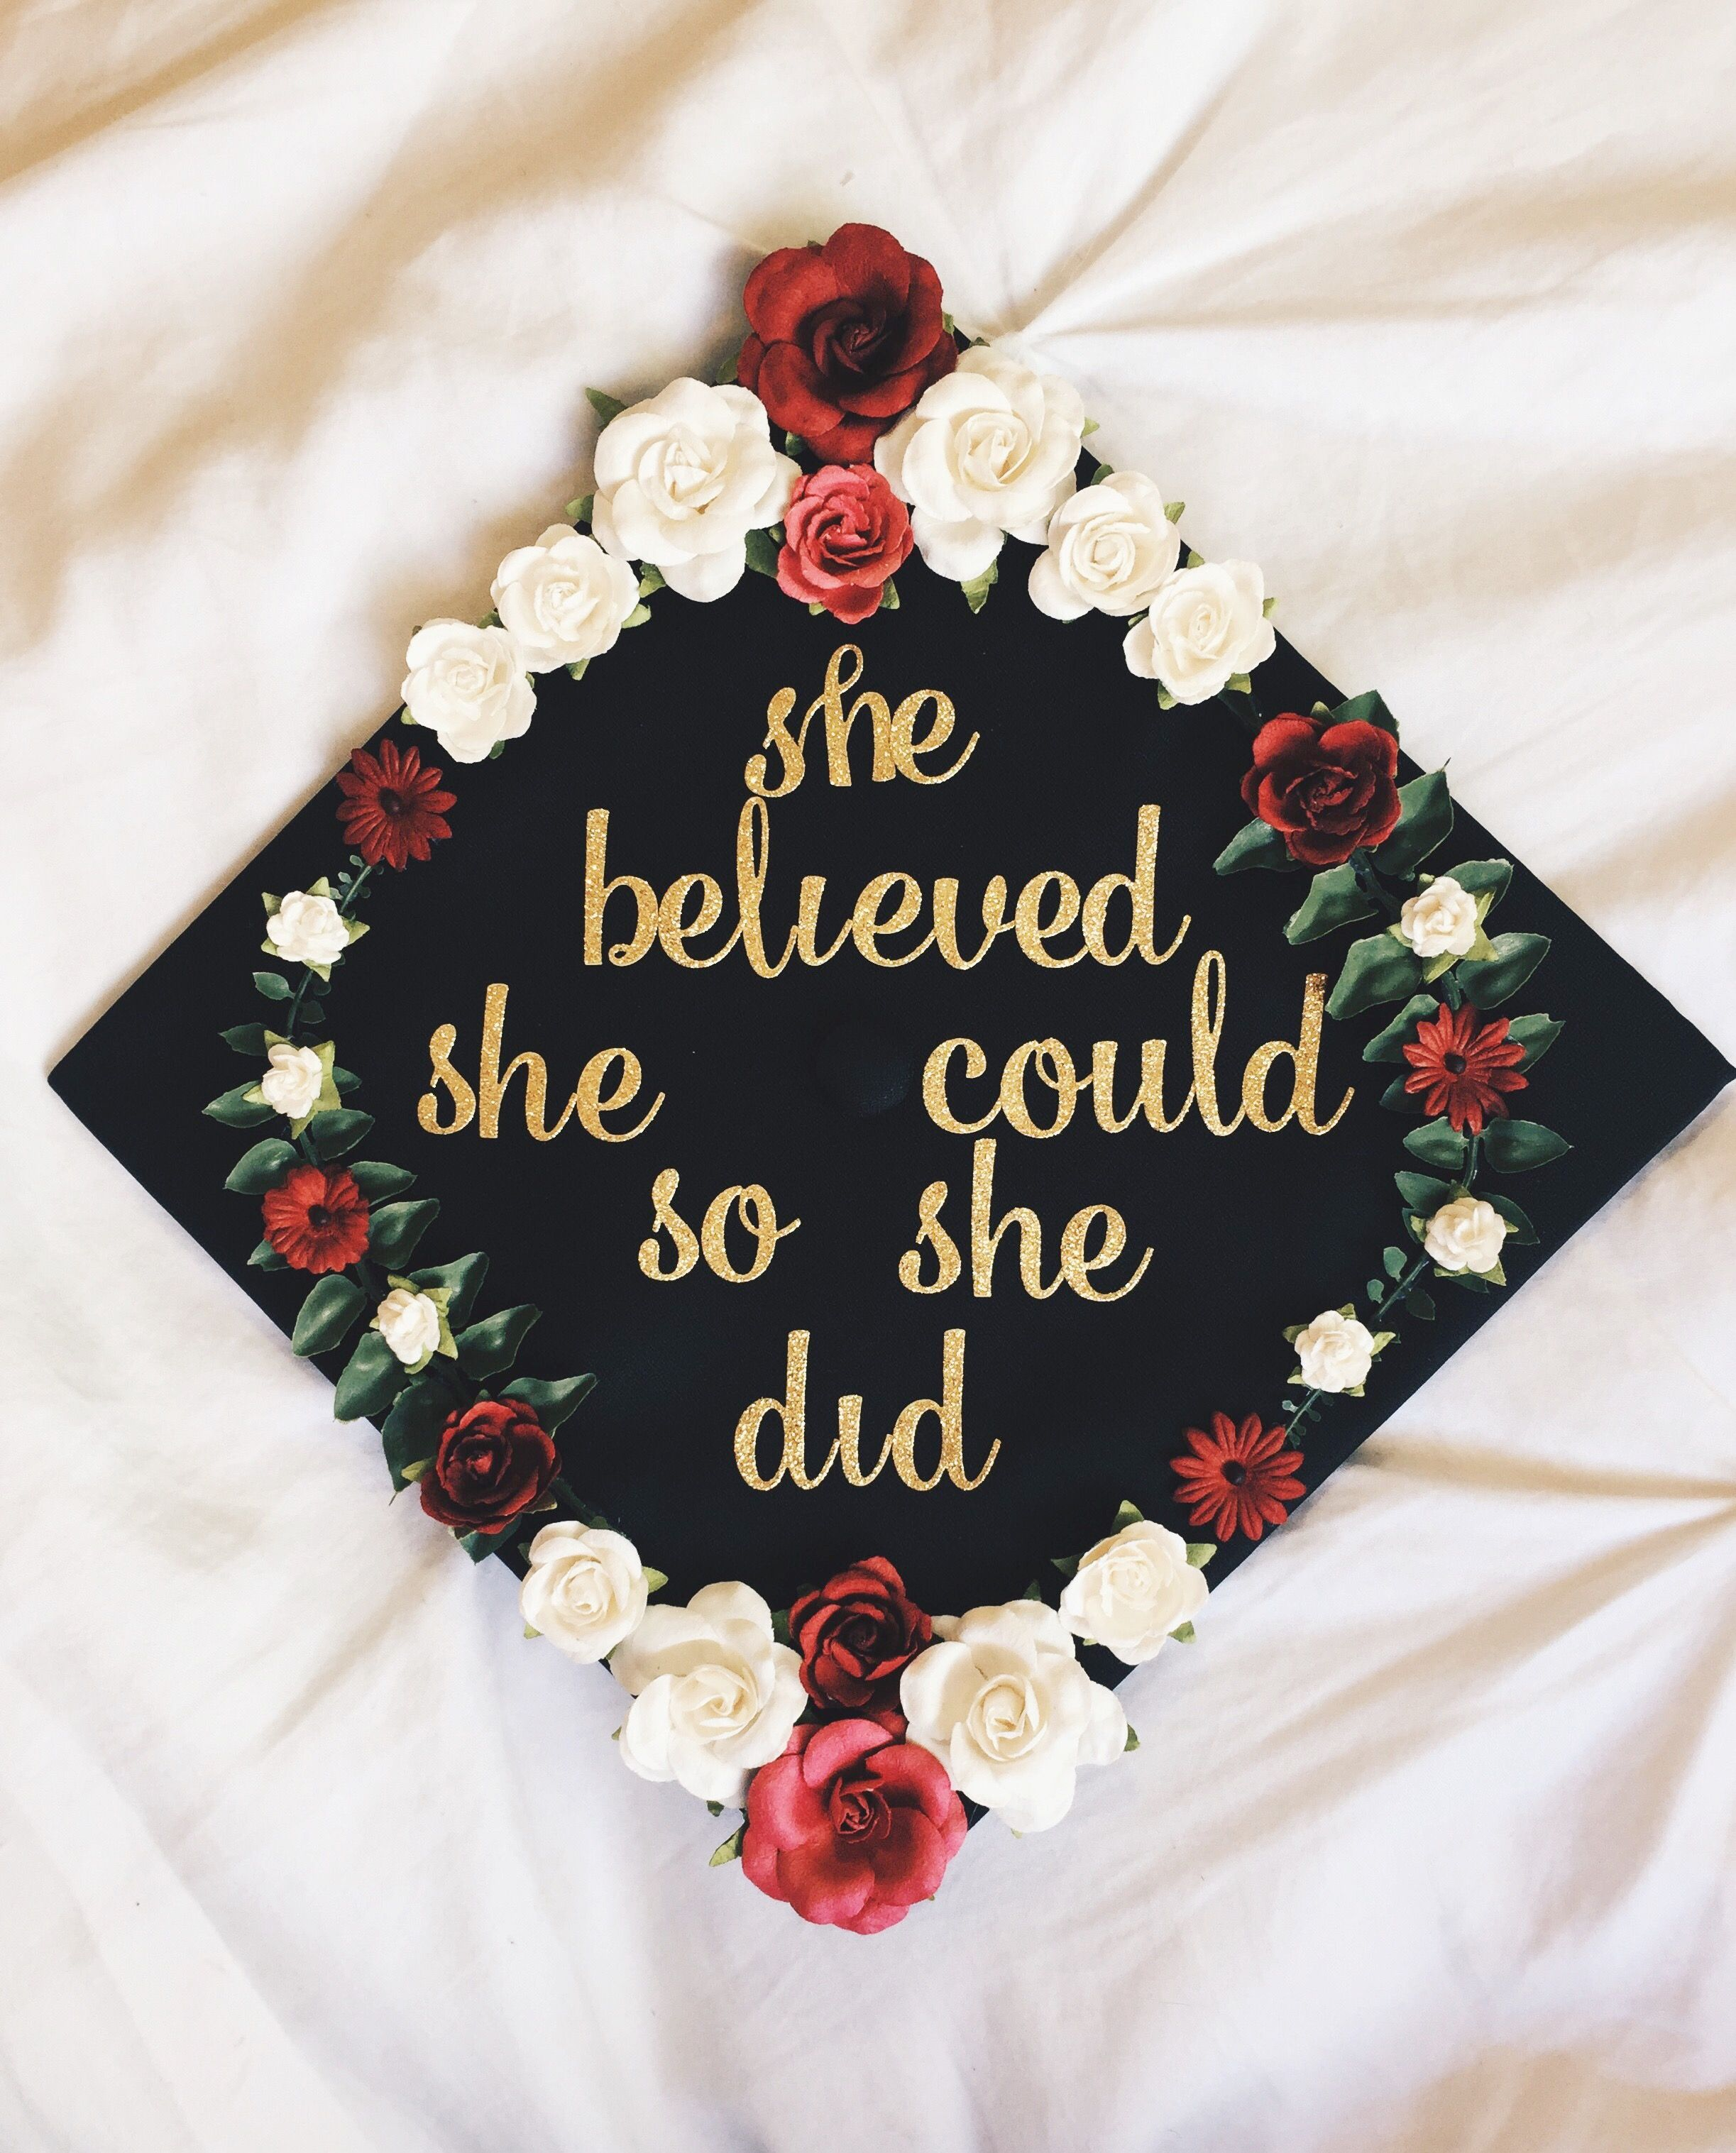 graduation cap 2017 she believed she could so she did Grad caps